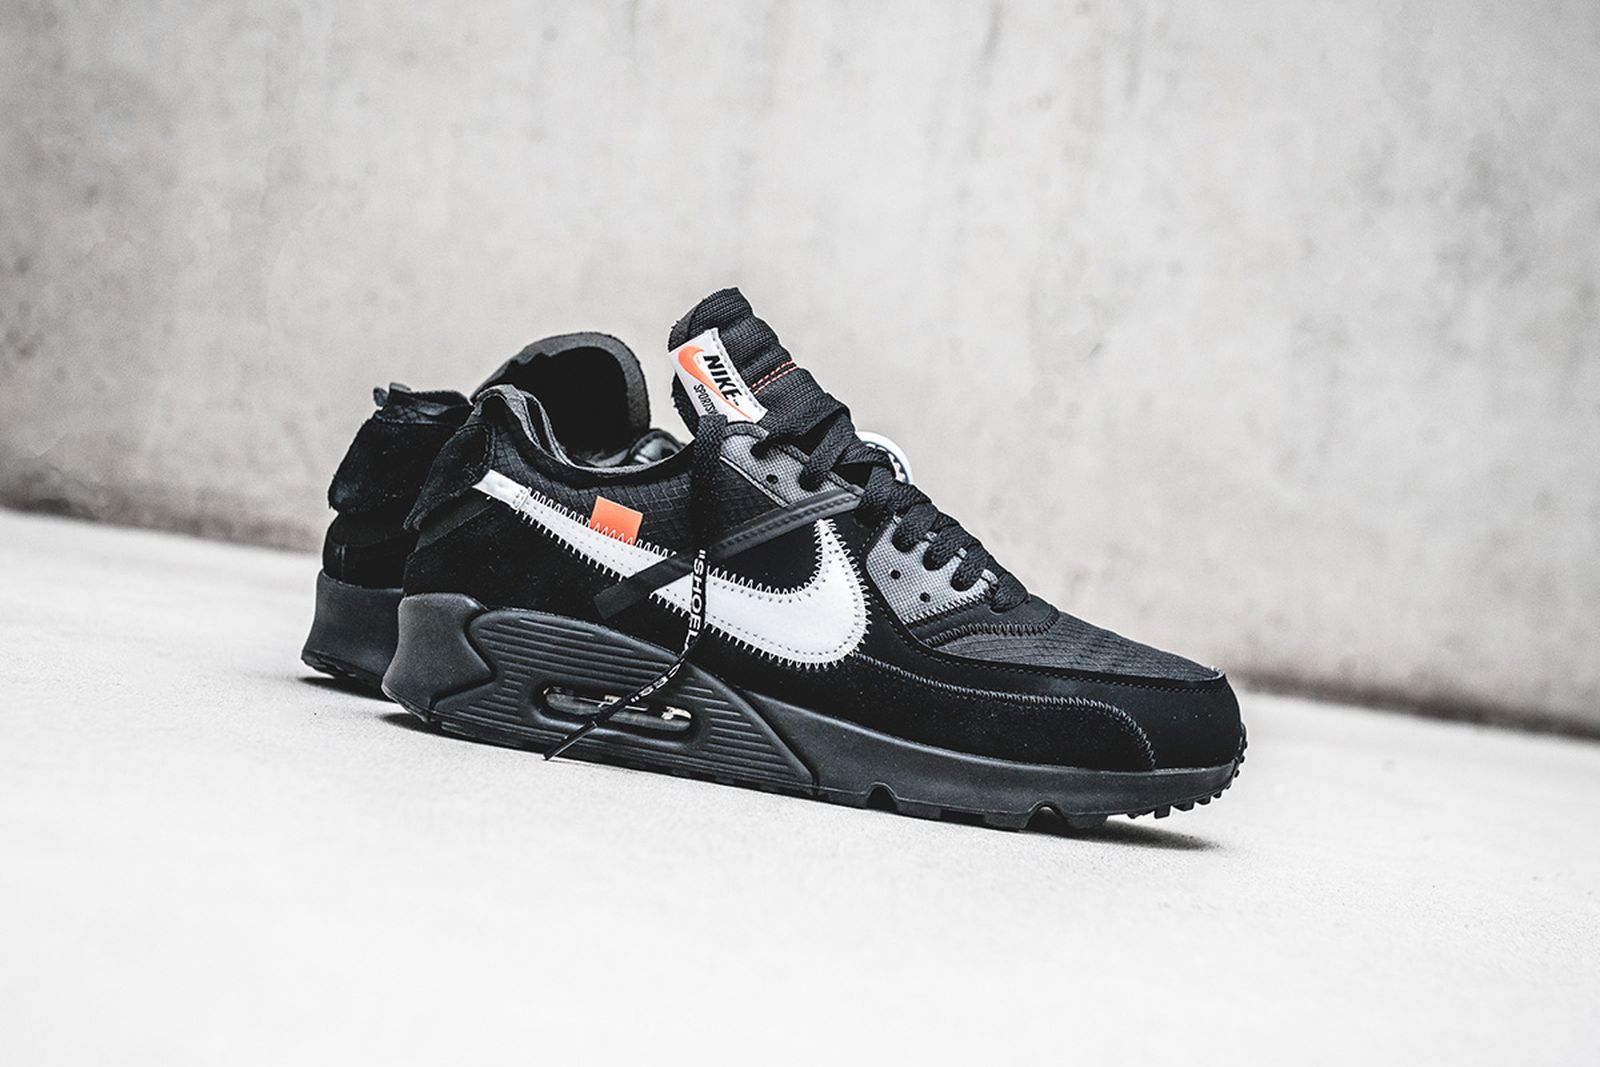 off white nike air max 90 2019 release date price OFF-WHITE c/o Virgil Abloh